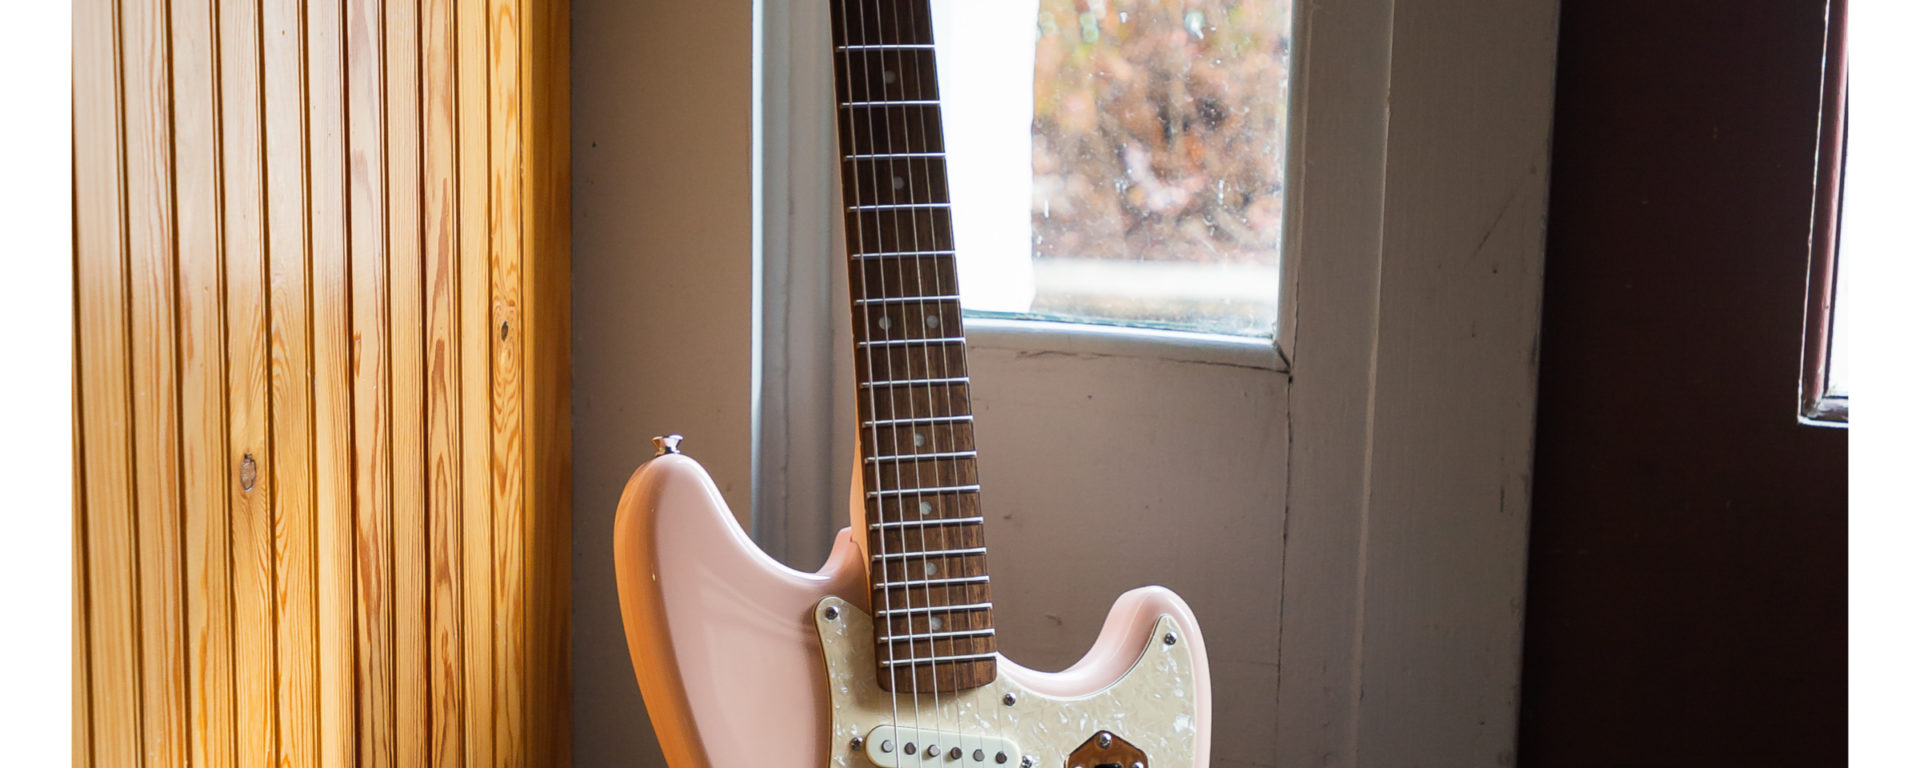 Squier - Paranormal Cyclone Laurel Fingerboard - Shell Pink